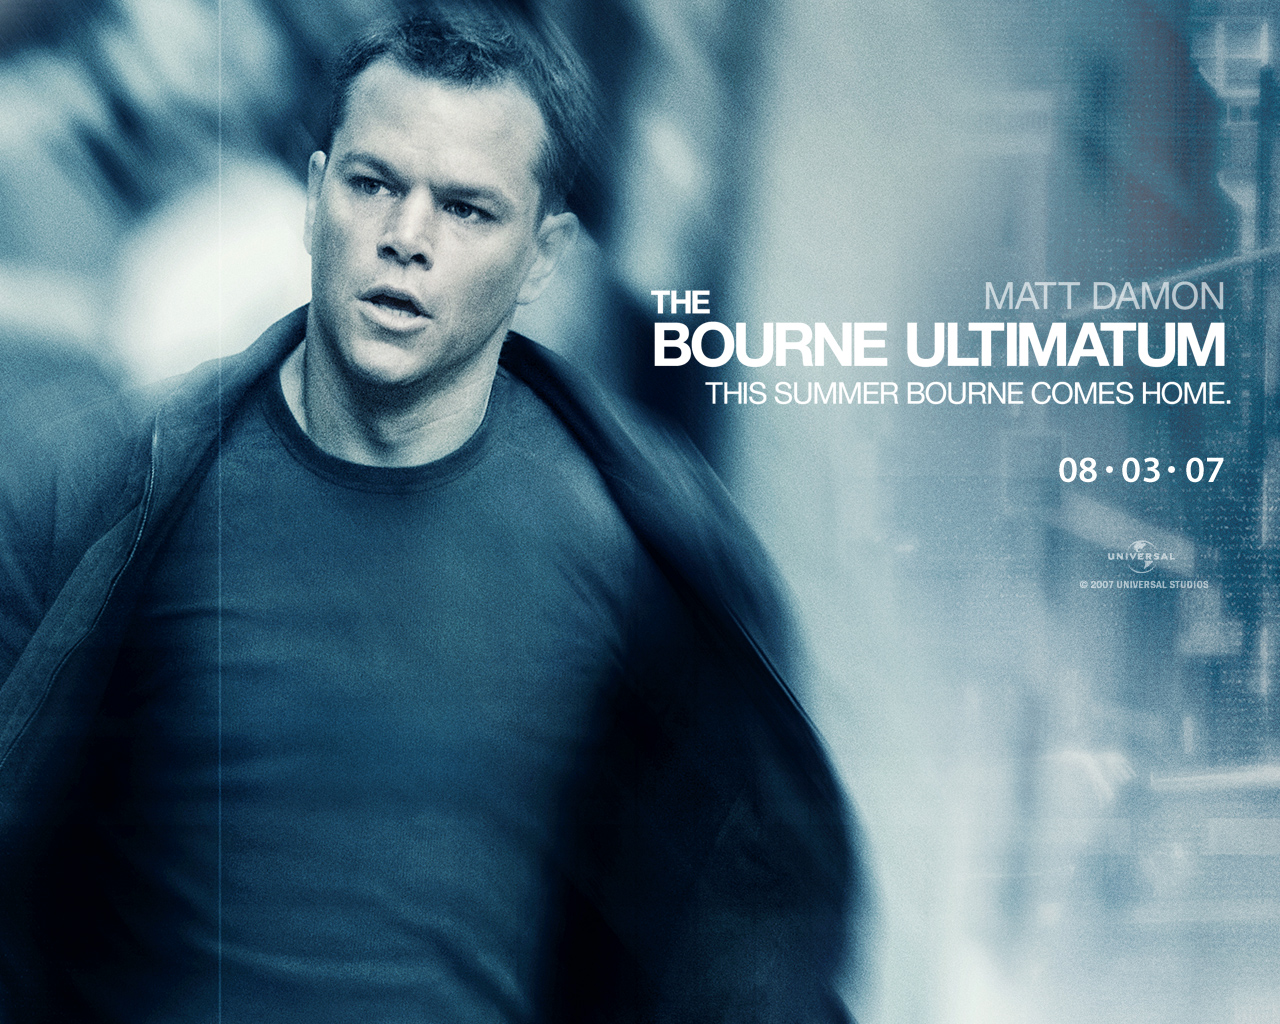 http://3.bp.blogspot.com/-LPKX9CZyca4/T_WKyIWKRCI/AAAAAAAACi0/MK7YtXjbTXI/s1600/Matt_Damon_in_The_Bourne_Ultimatum.jpg